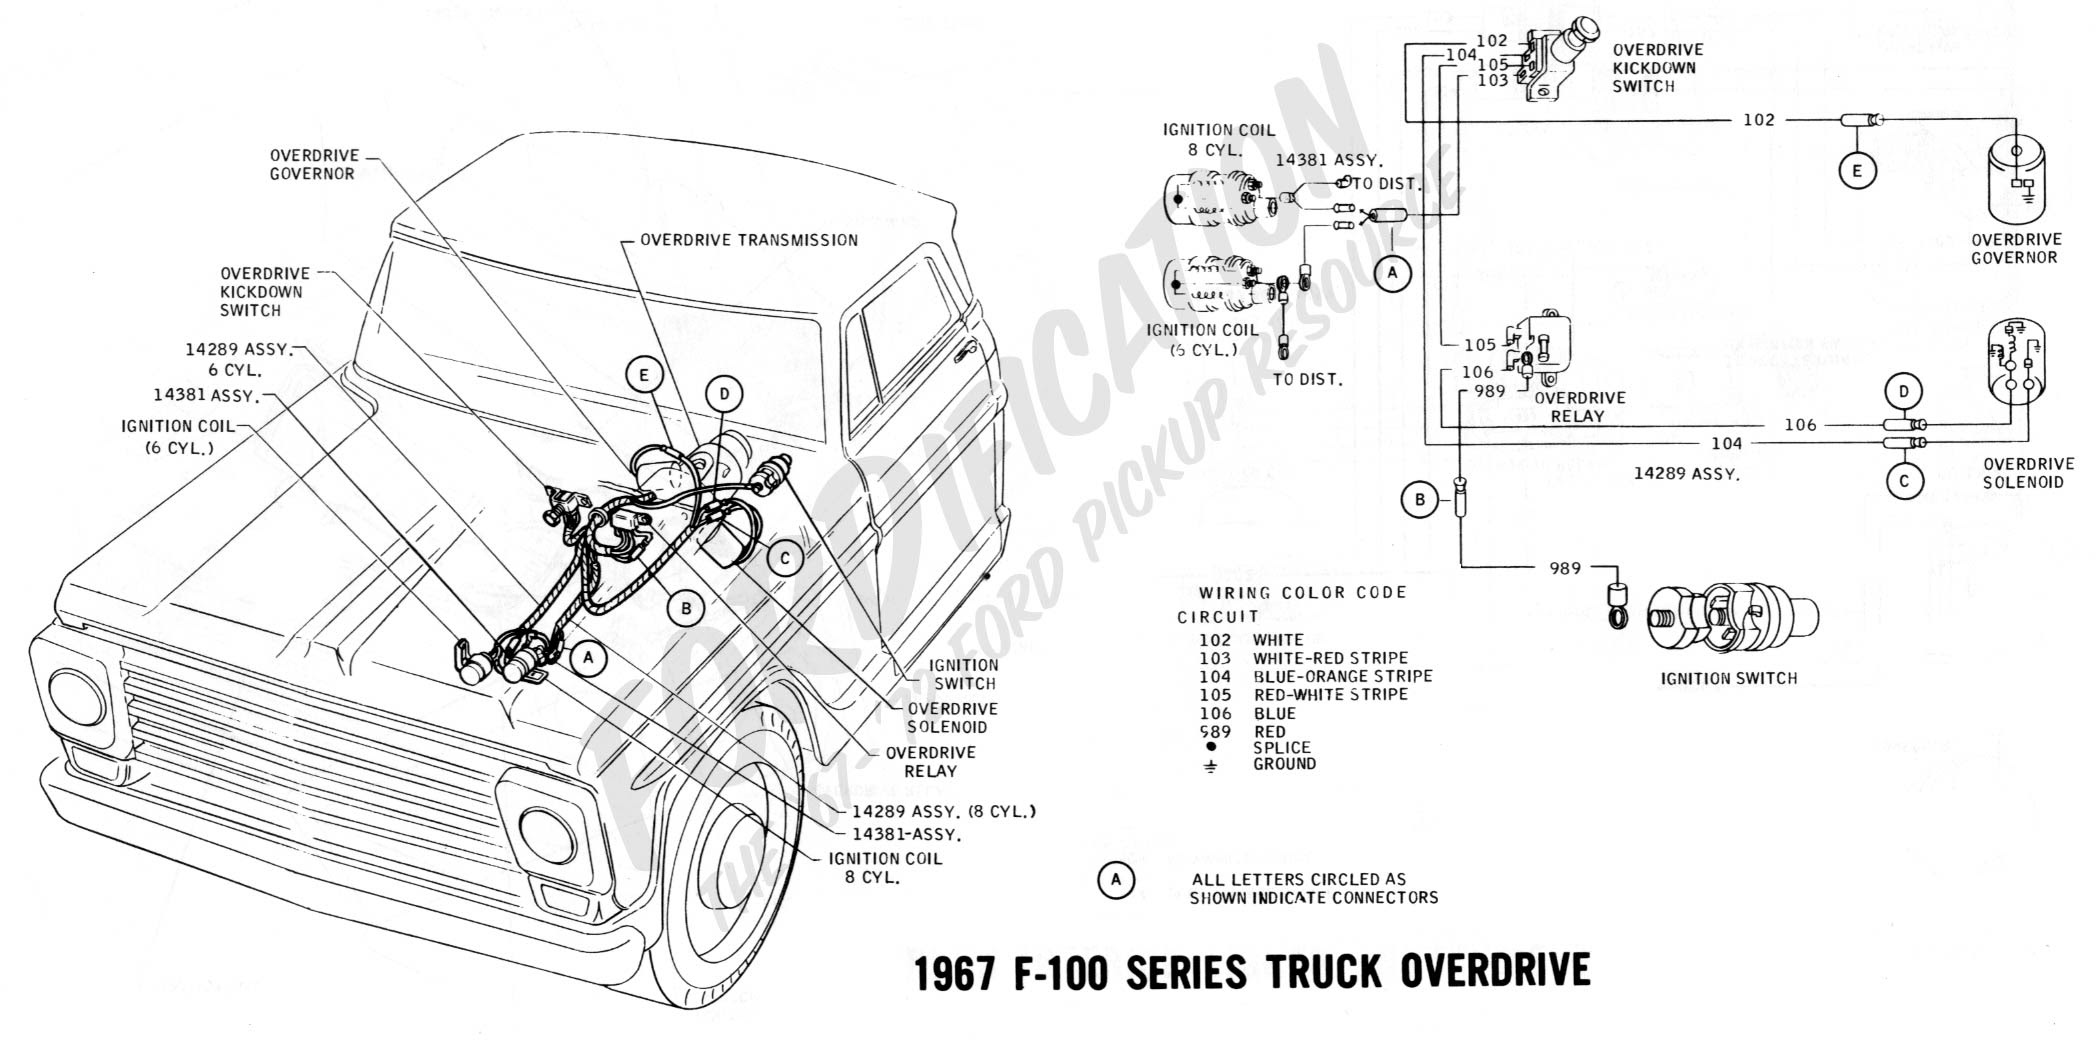 E0ab244 Ford 1976 Xlt F100 Wiring Wiring Resources